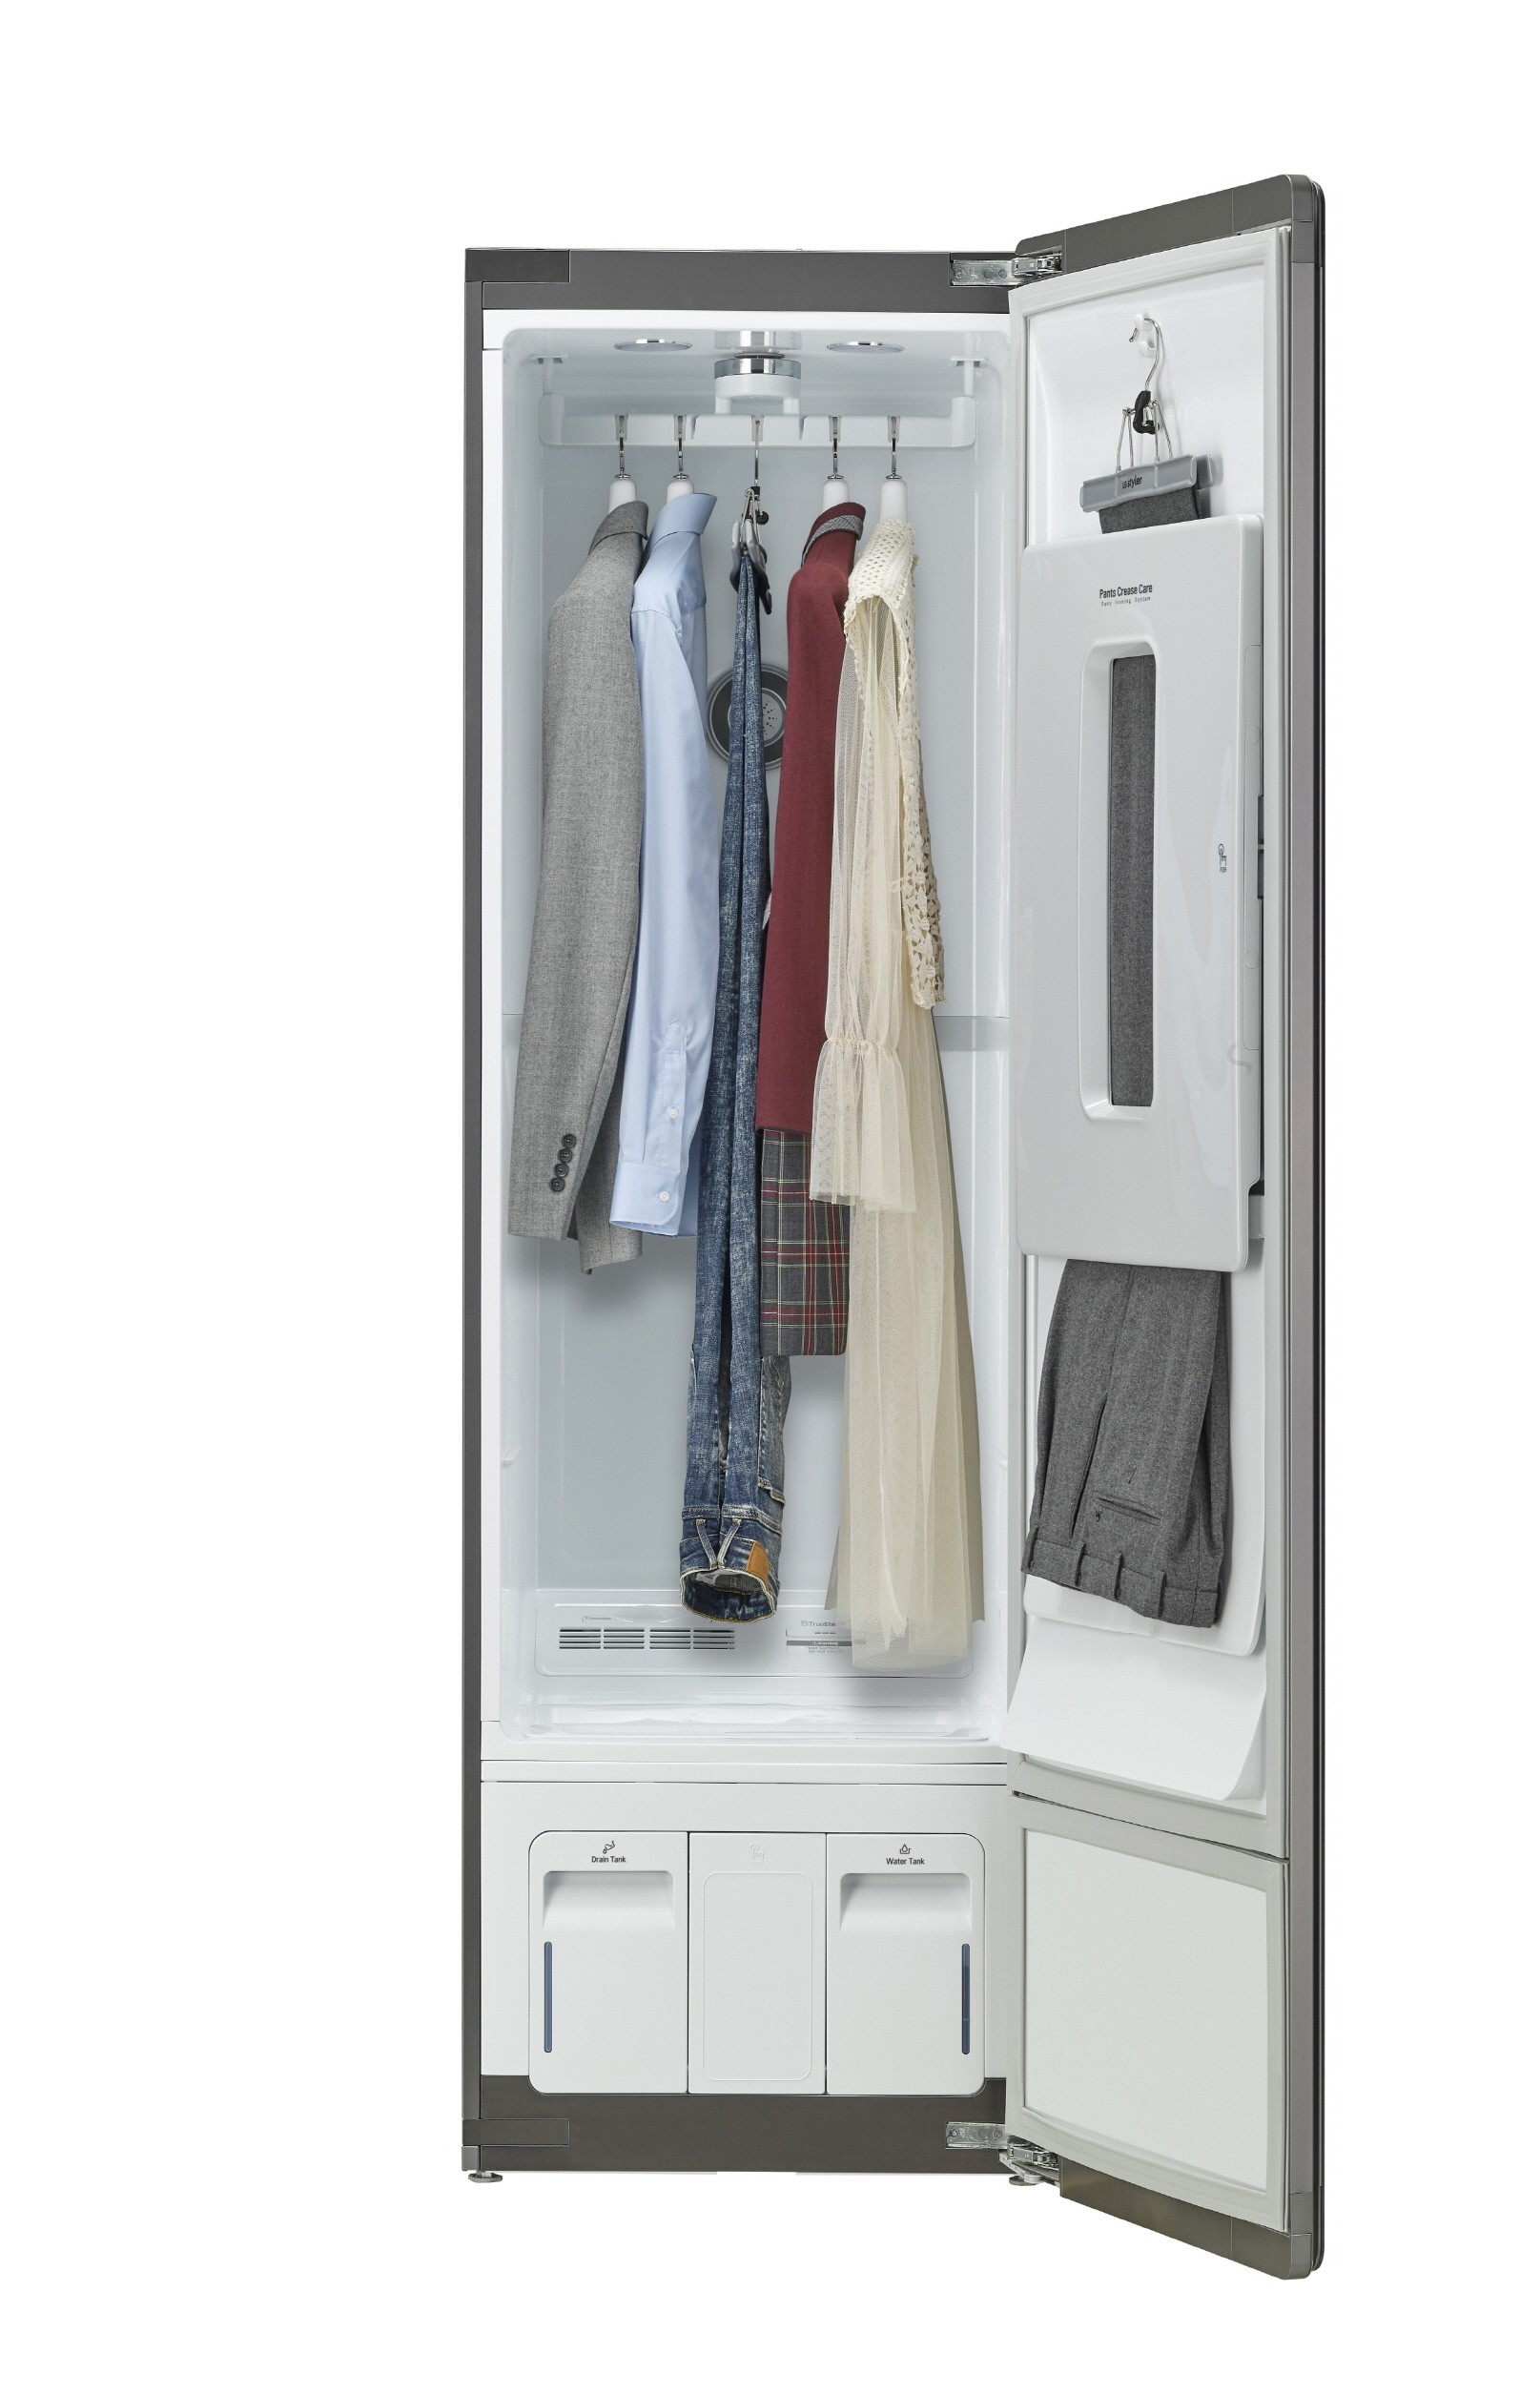 LG Styler with Black Tinted Mirror Glass Door wide open to show women's dress, shirt and jackets hanging inside